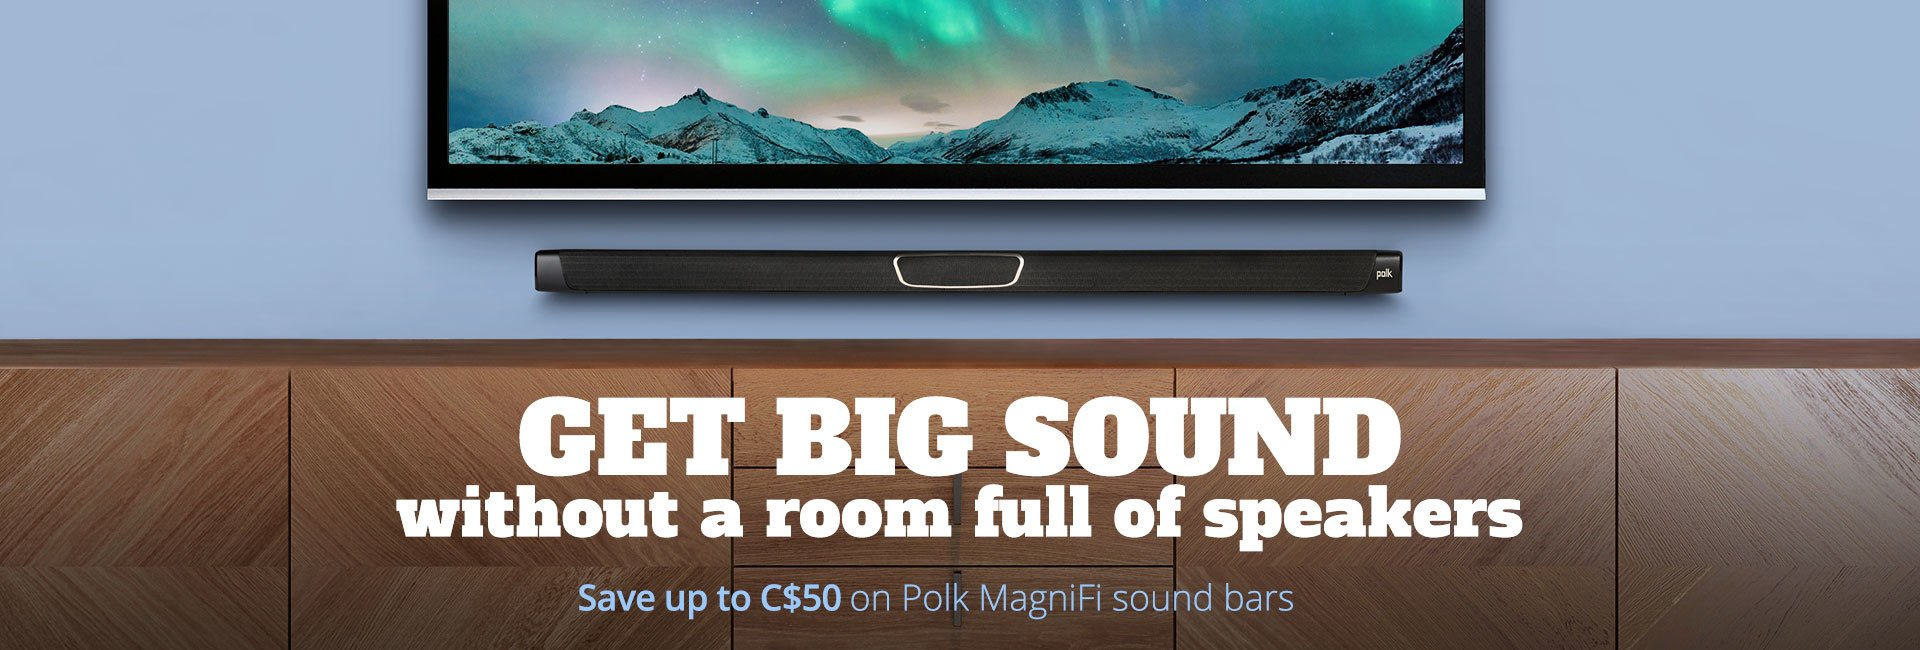 Save up to C$50 on Polk MagniFi sound bars